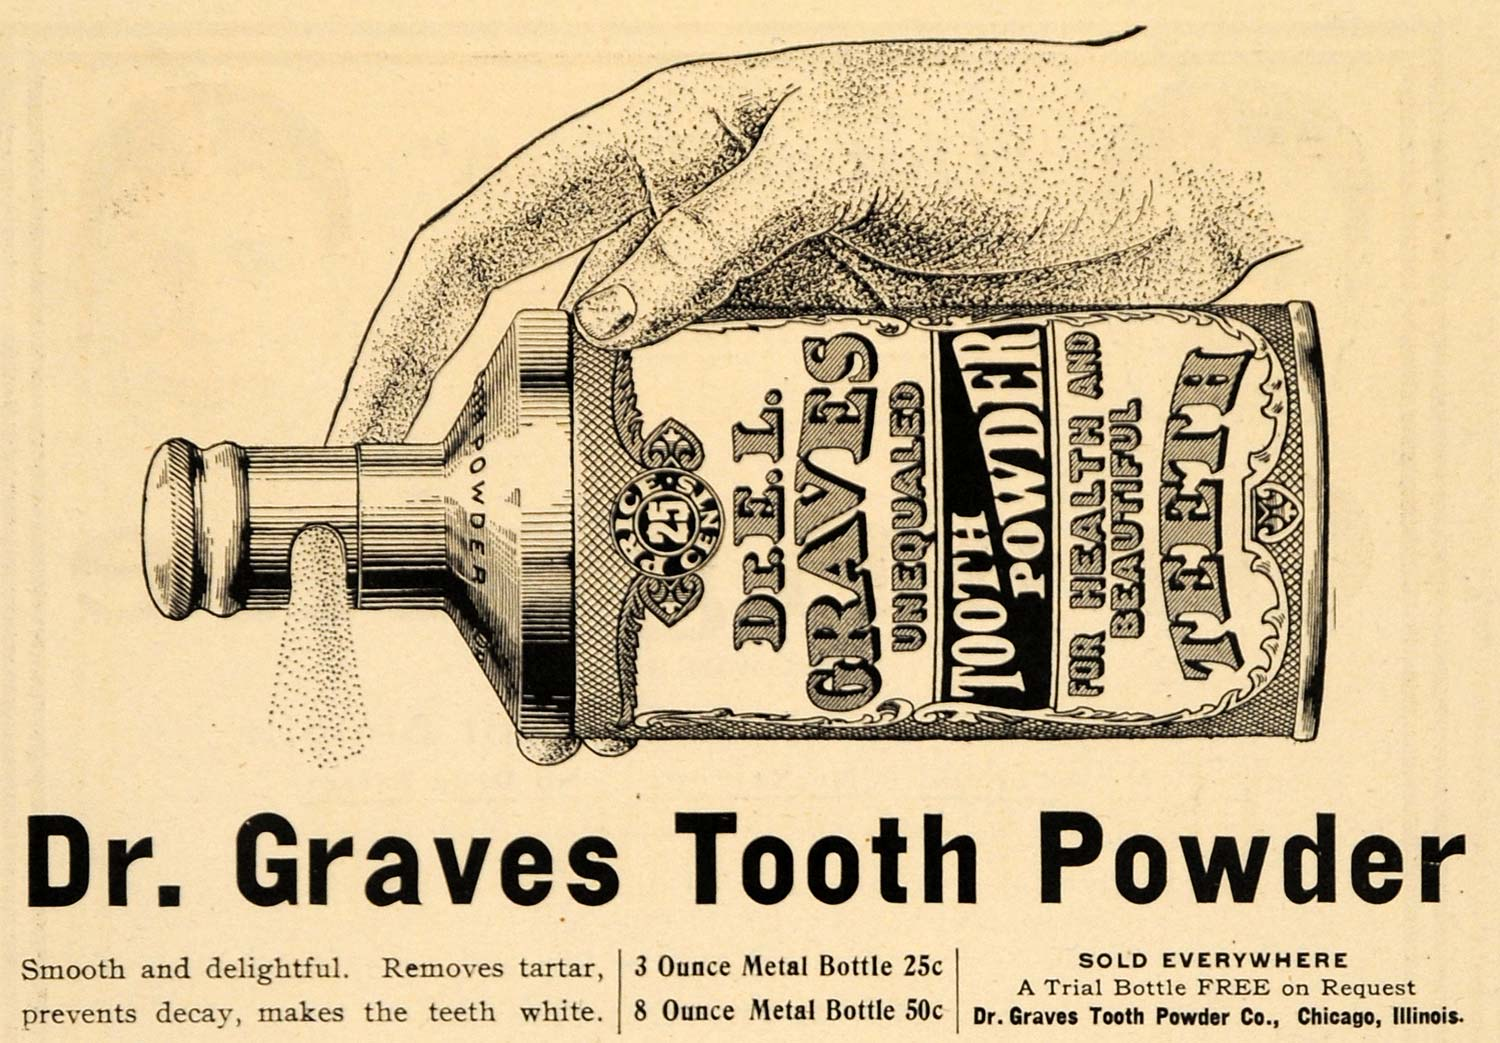 1904 Ad Dr E L Graves Tooth Powder Company Tartar Teeth - ORIGINAL RB1